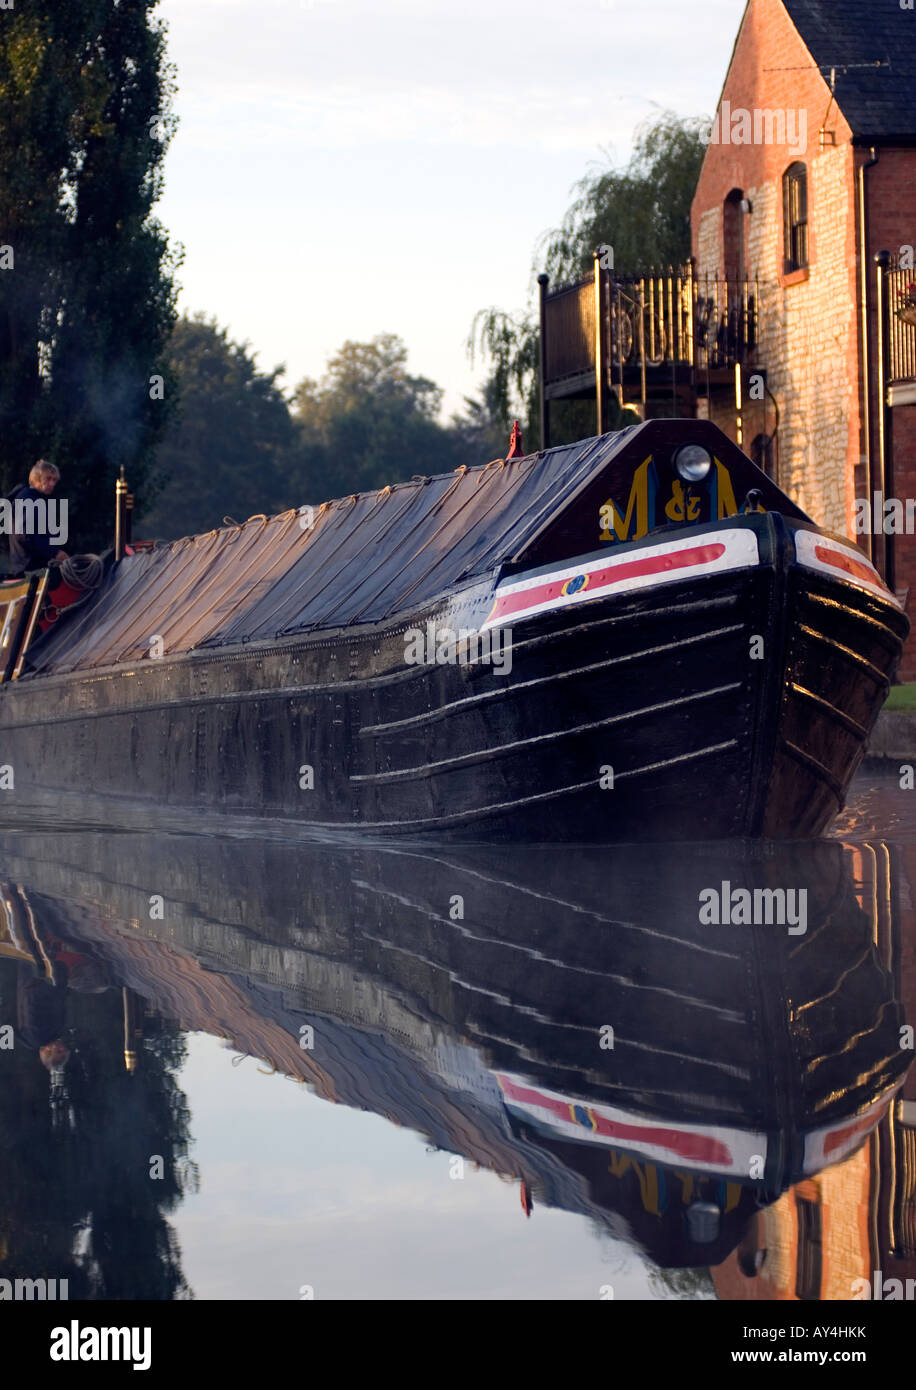 Doug Blane Traditional historic narrowboat navigating at Cosgrove on the Gran Union canal Stock Photo